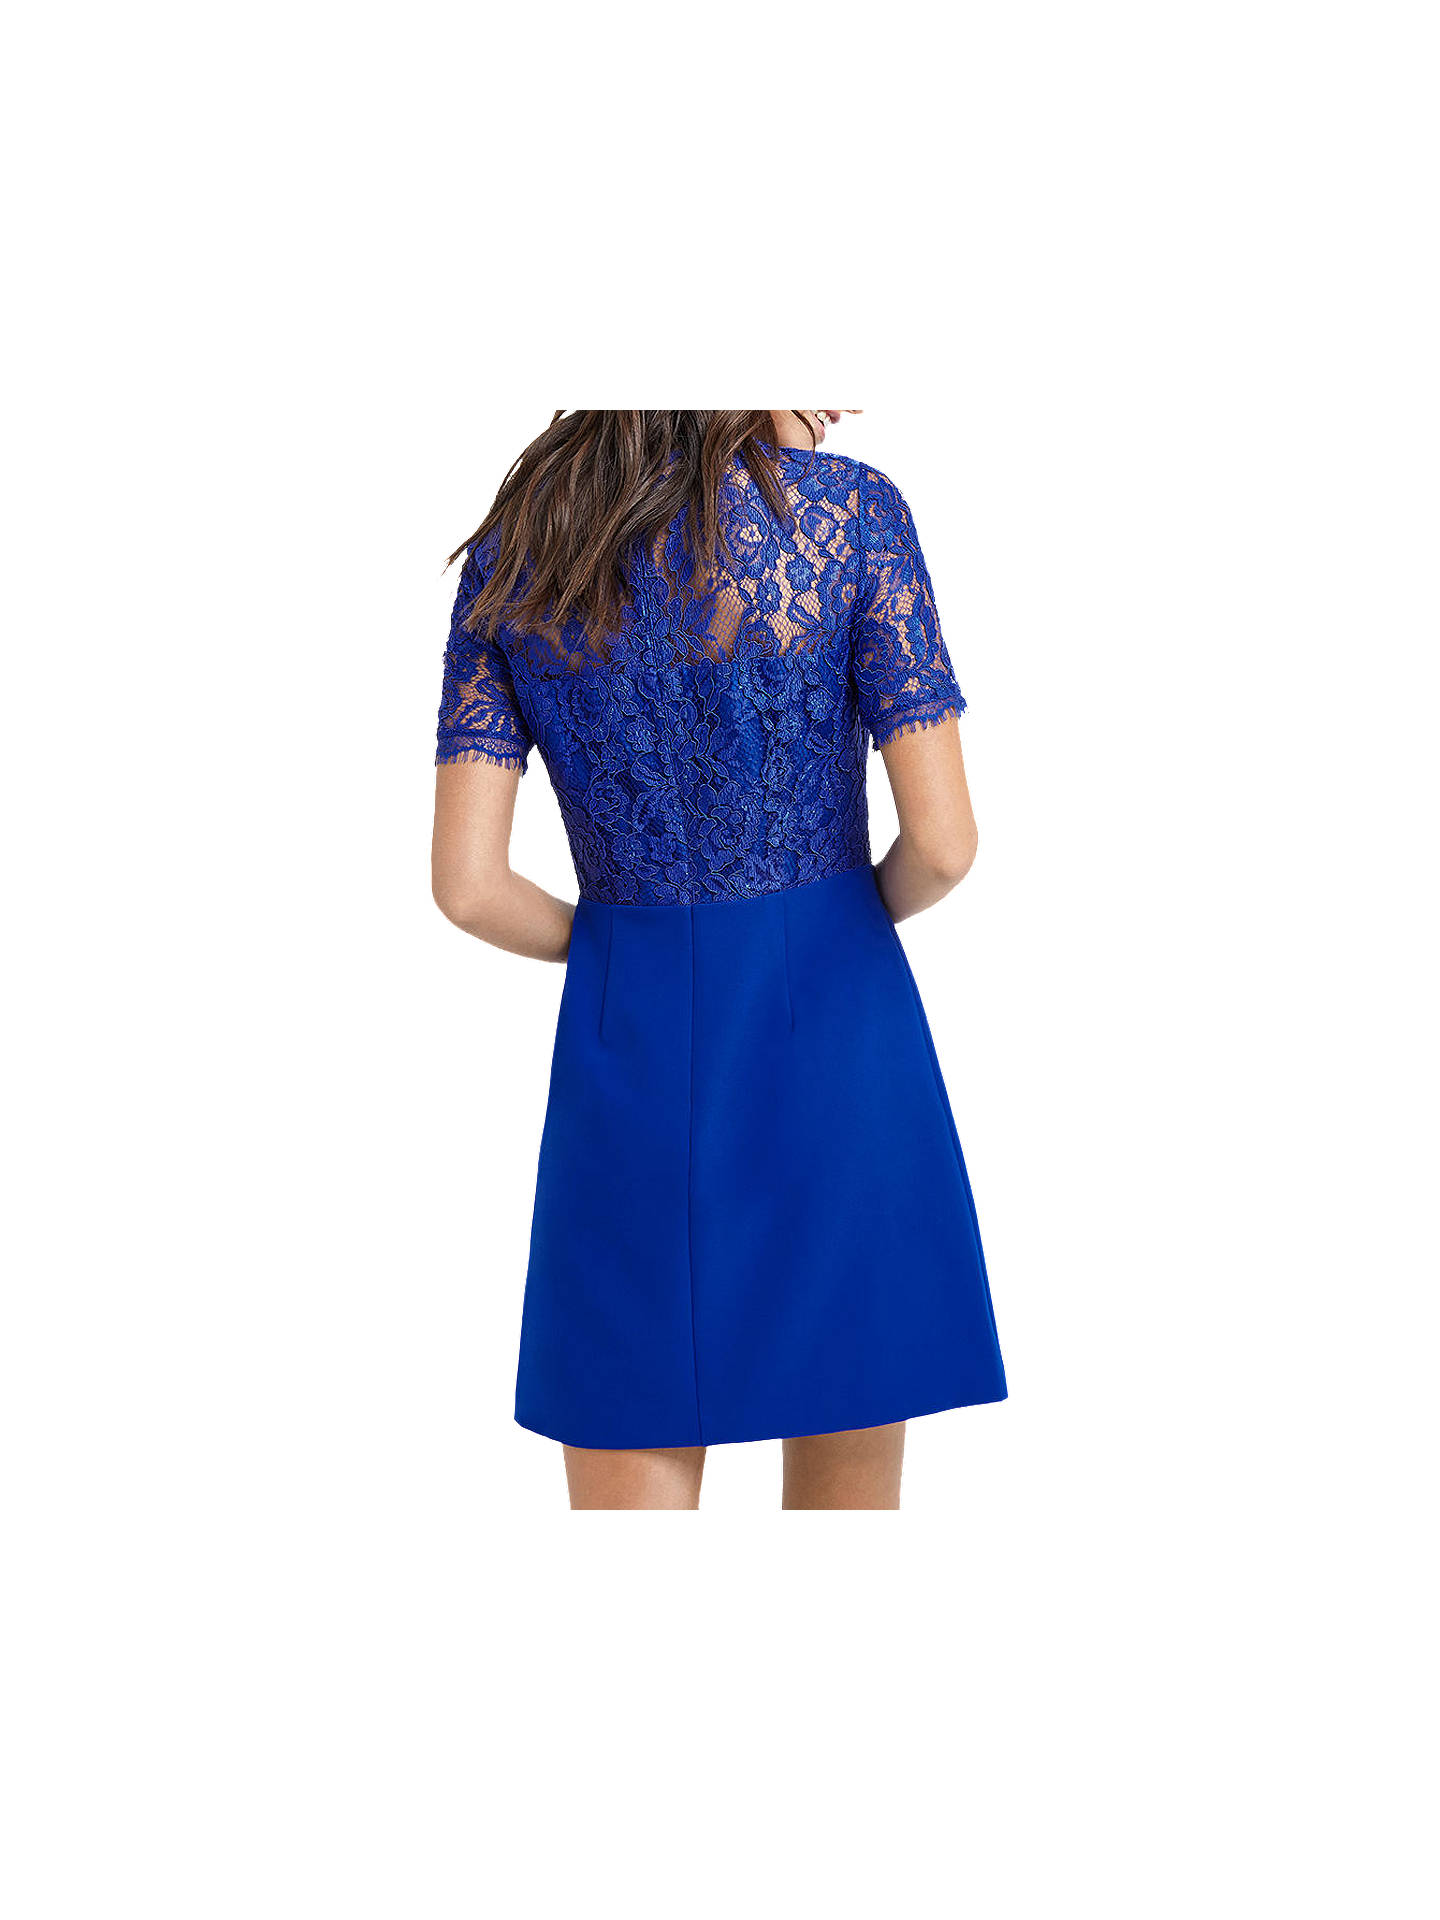 a2899c6a63d8 ... Buy Oasis Lace Bodice Shift Dress, Mid Blue, 6 Online at johnlewis.com  ...